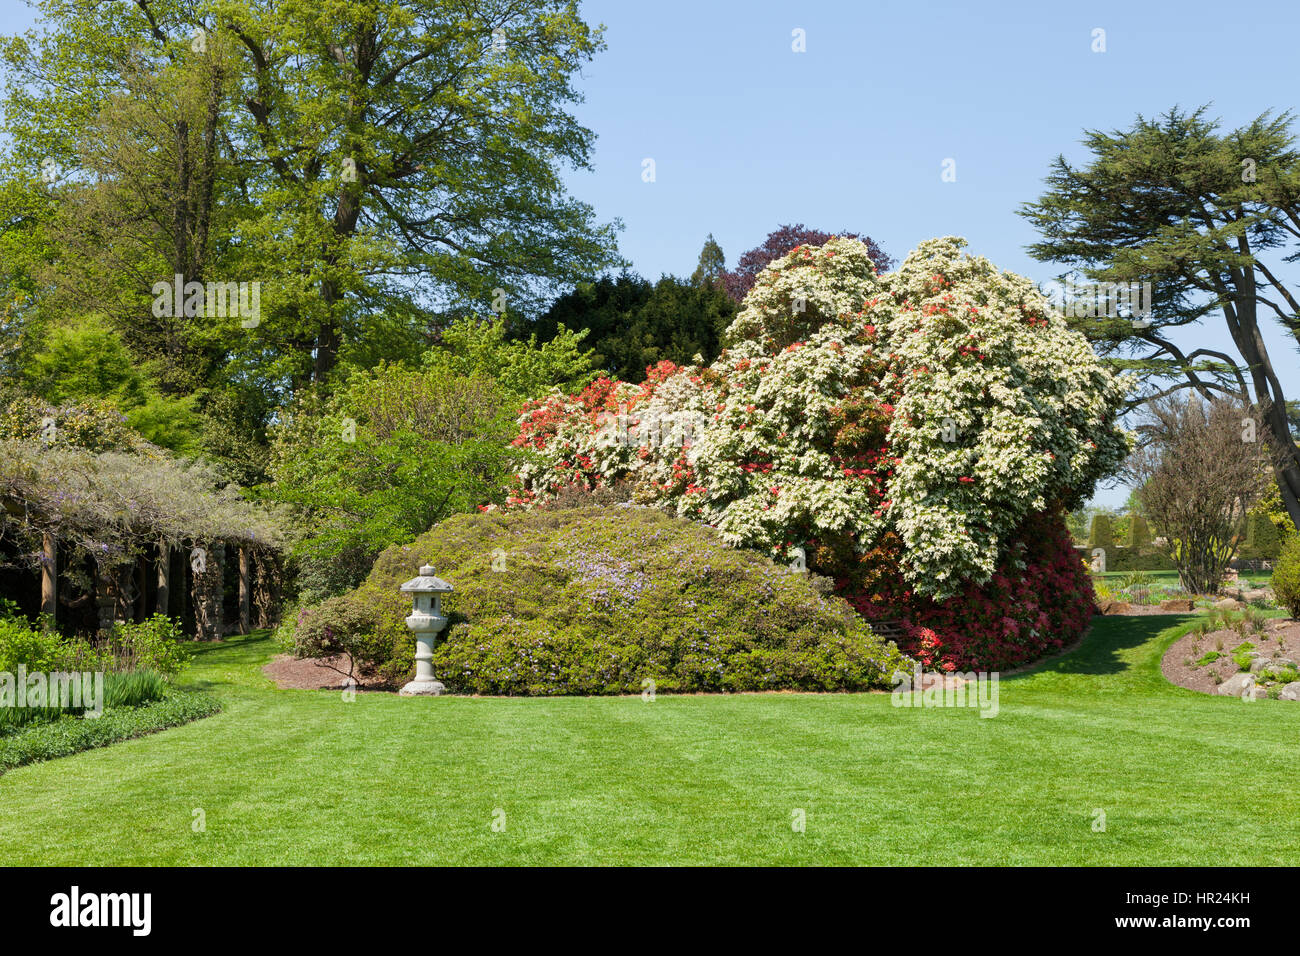 Red And White Flowering Trees And Shrubs In A Colorful English